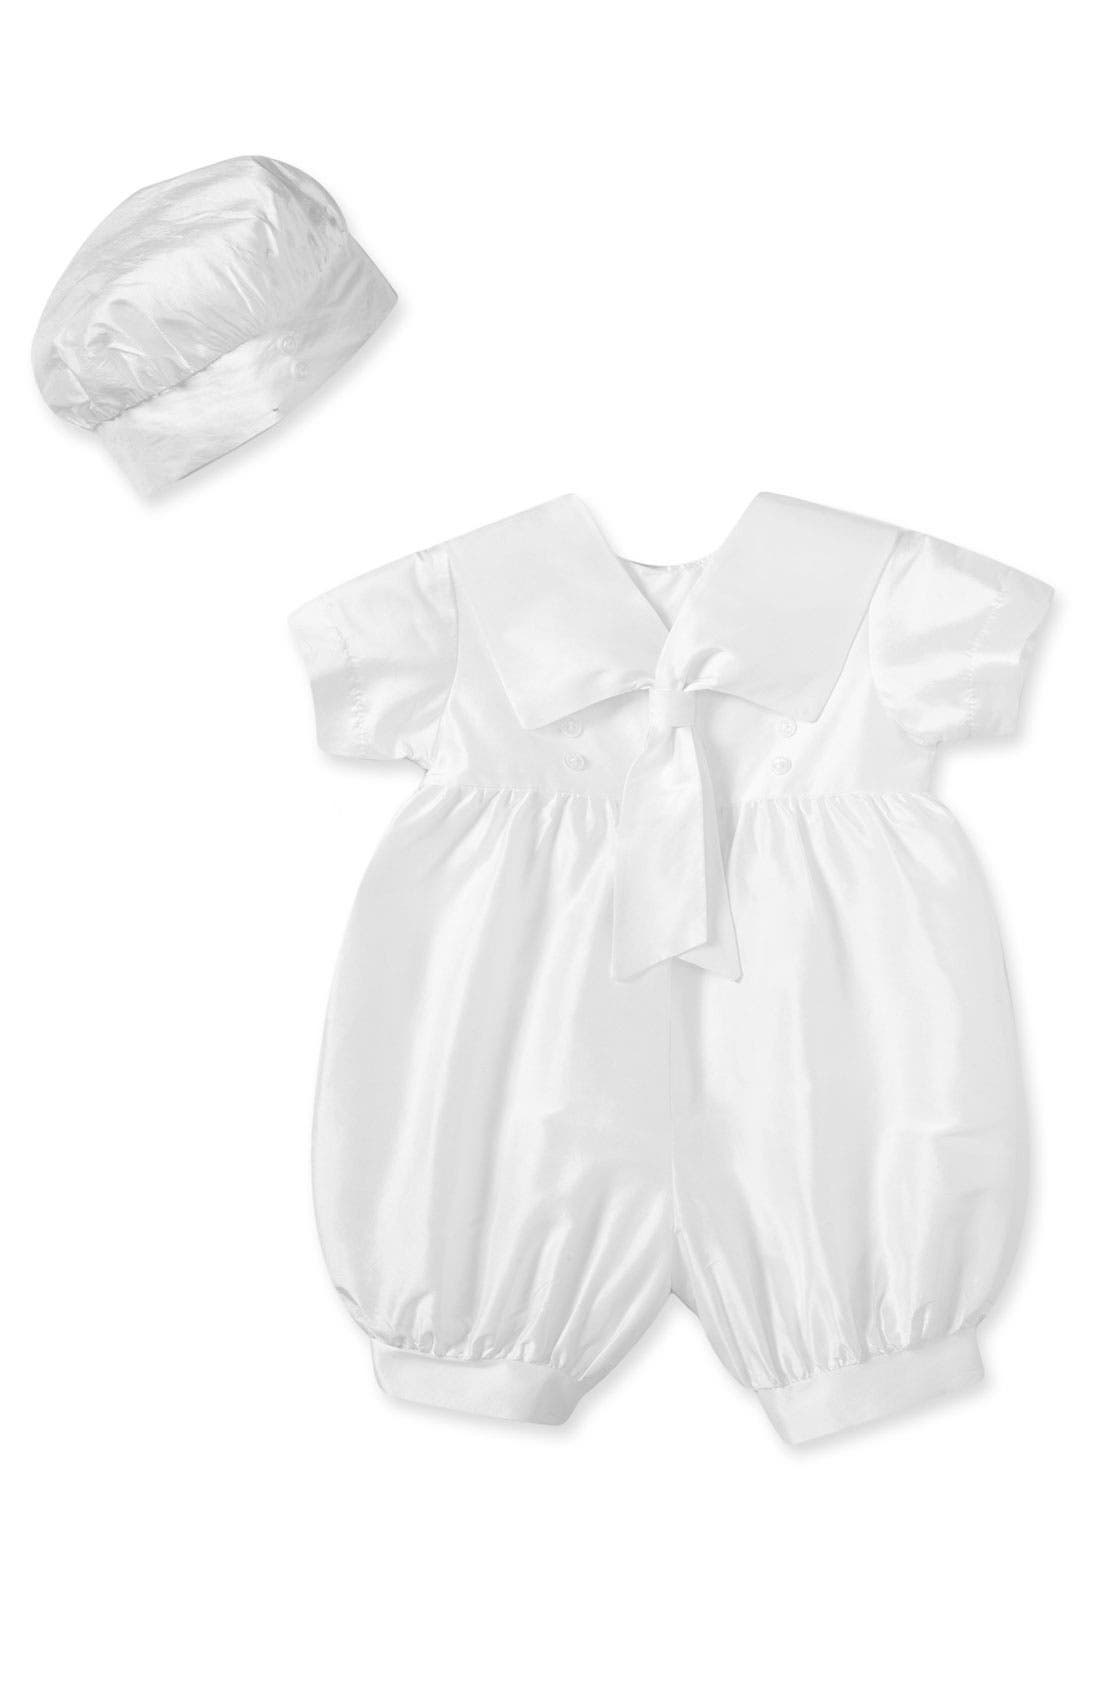 Main Image - Little Things Mean a Lot Christening Romper (Baby)